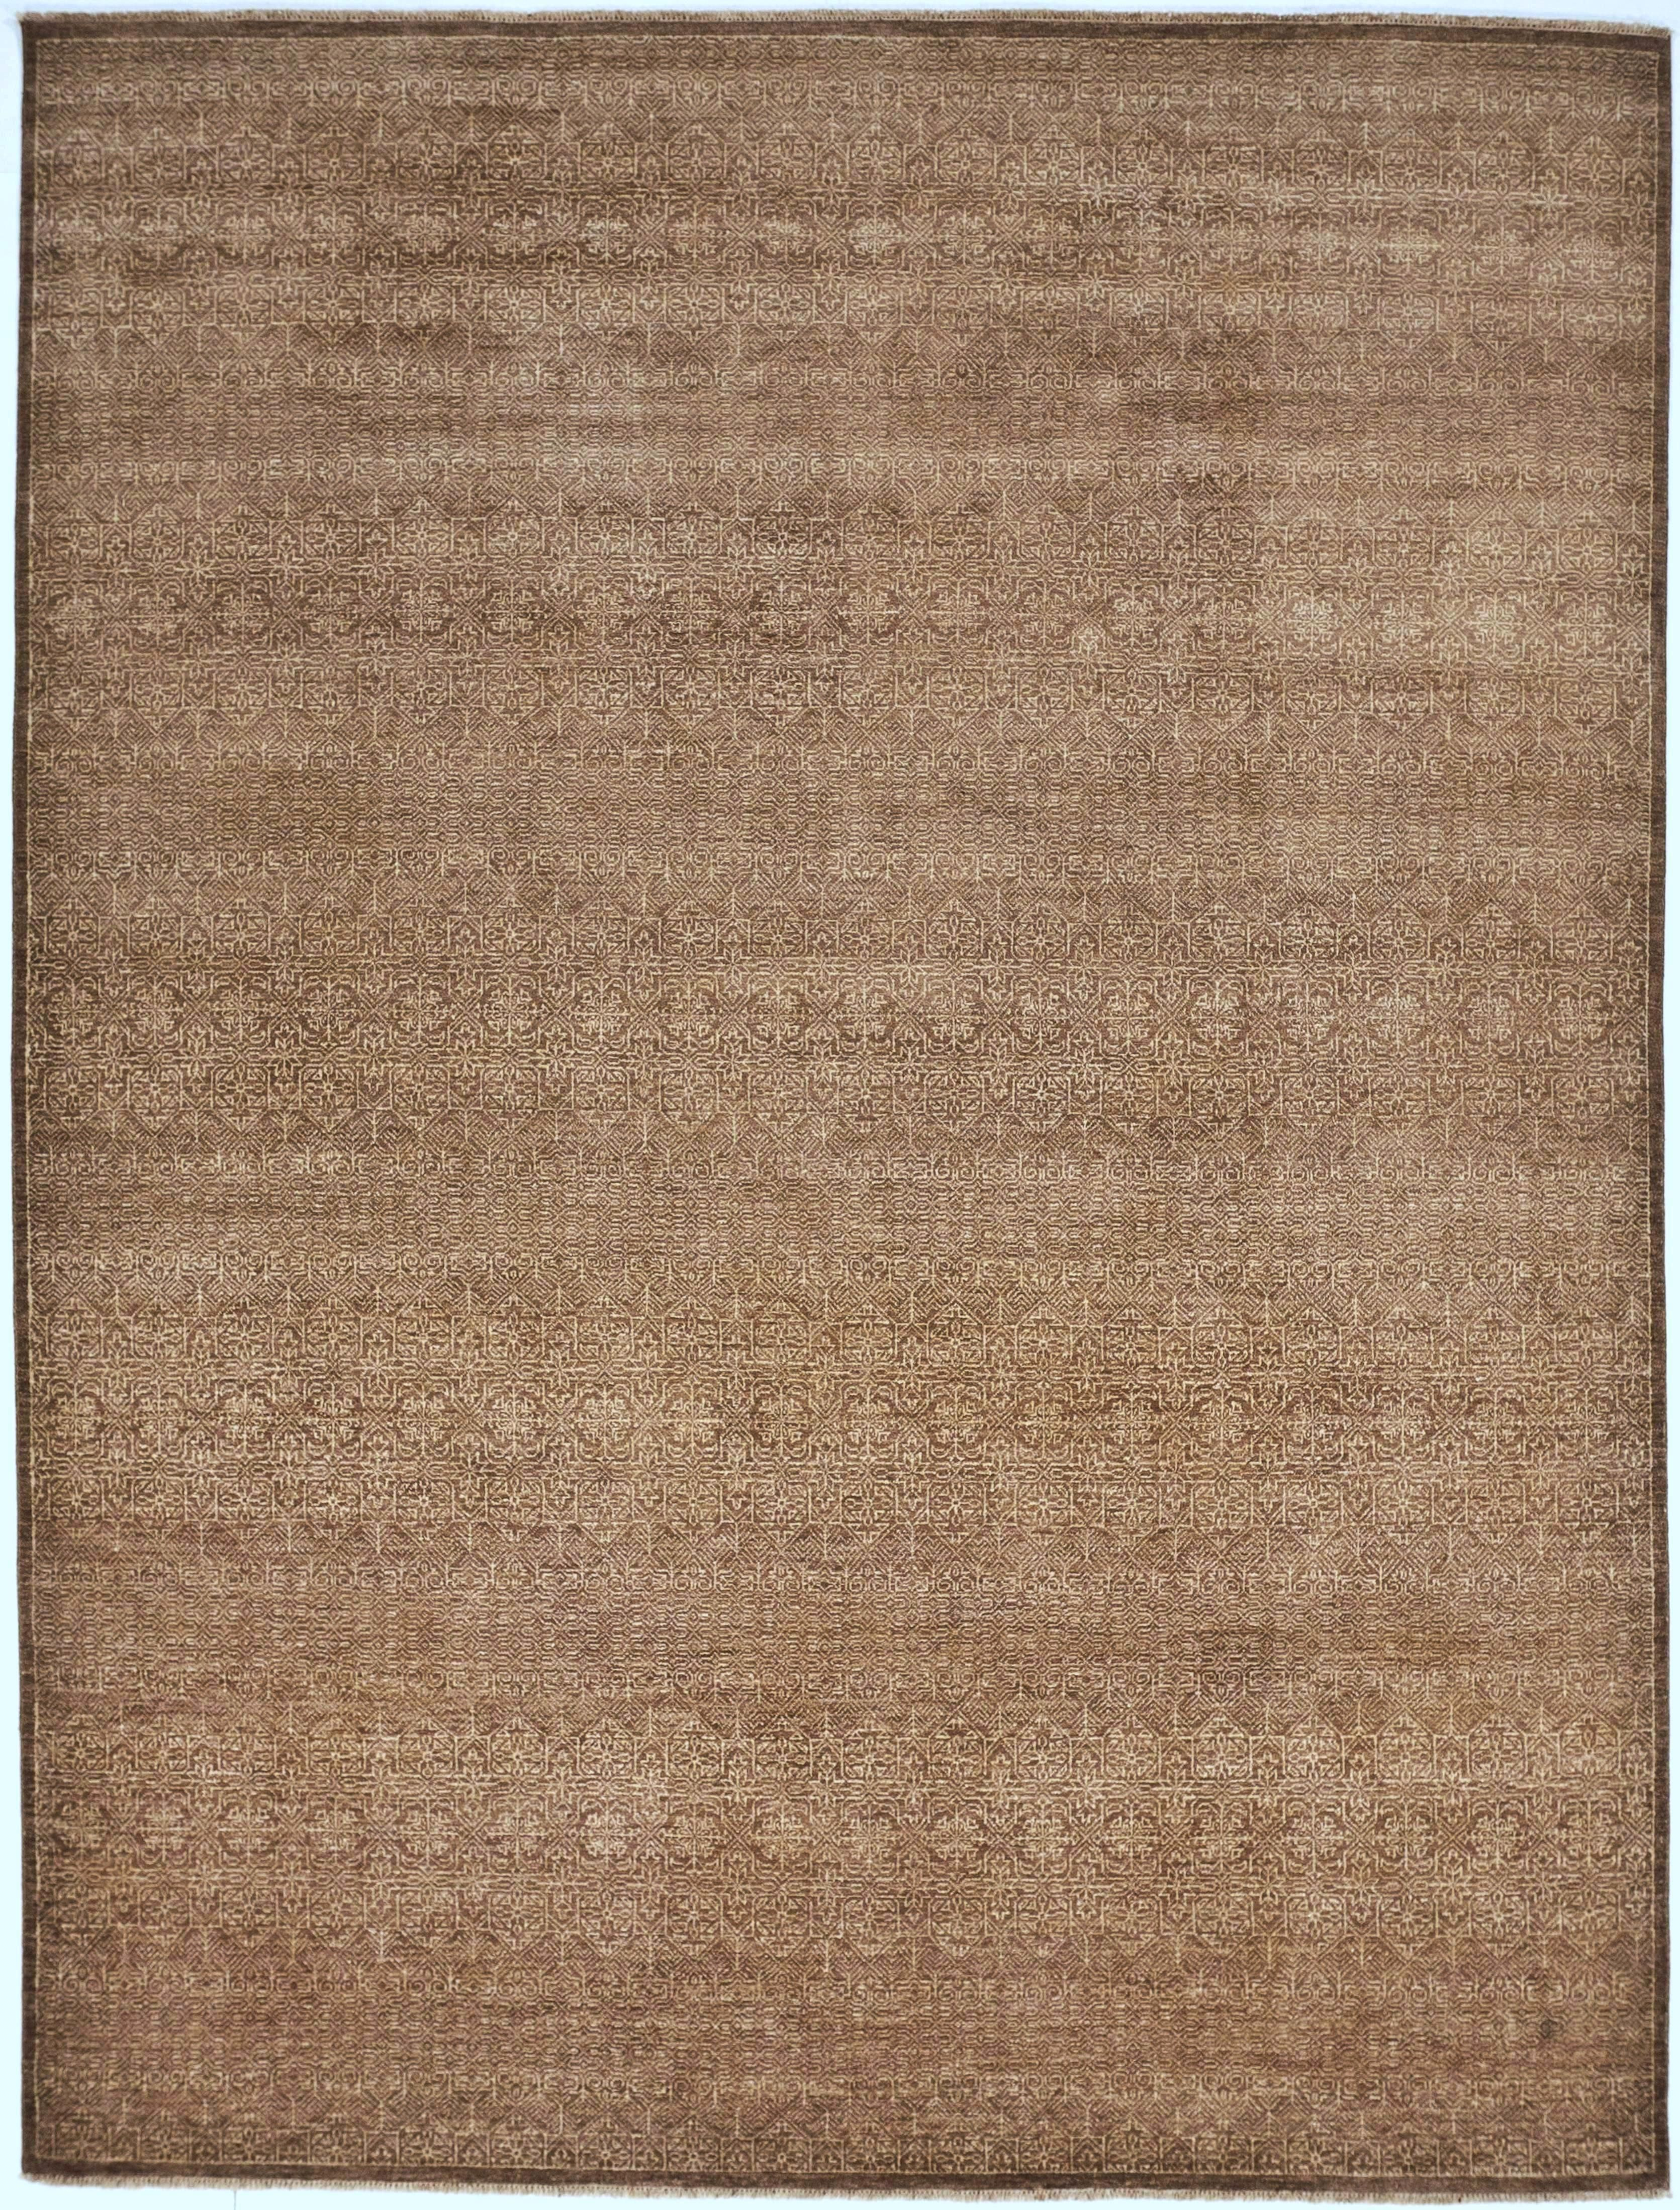 Hand Knotted Indian Rug 9 2 X 12